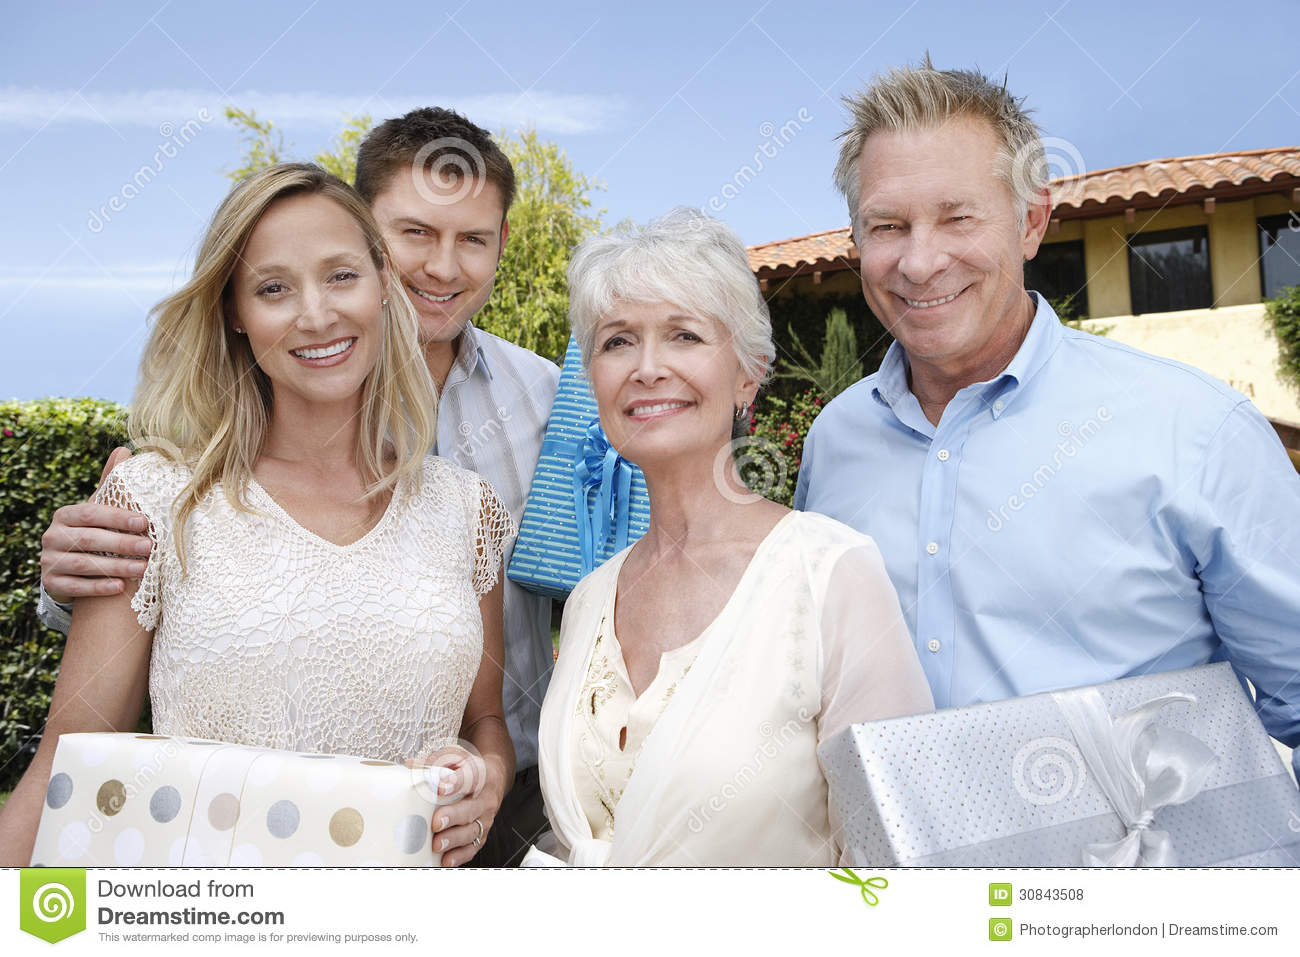 Old couple outdoor with younger woman